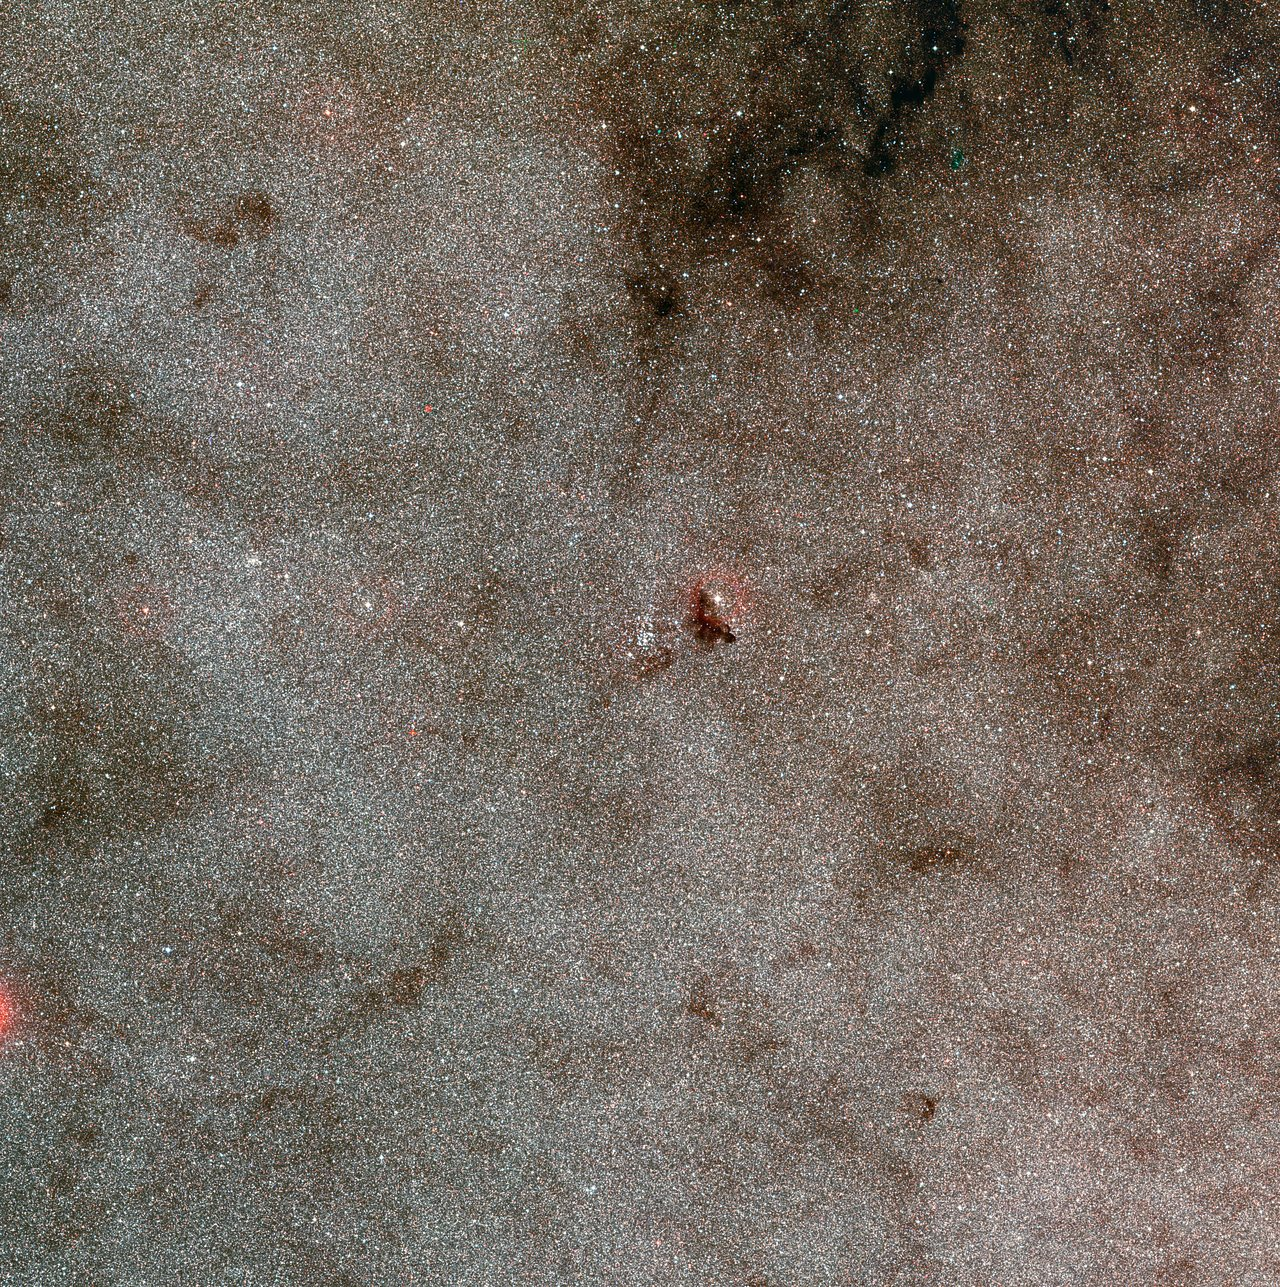 Wide-field view of the star cluster NGC 6520 and the dark cloud Barnard 86